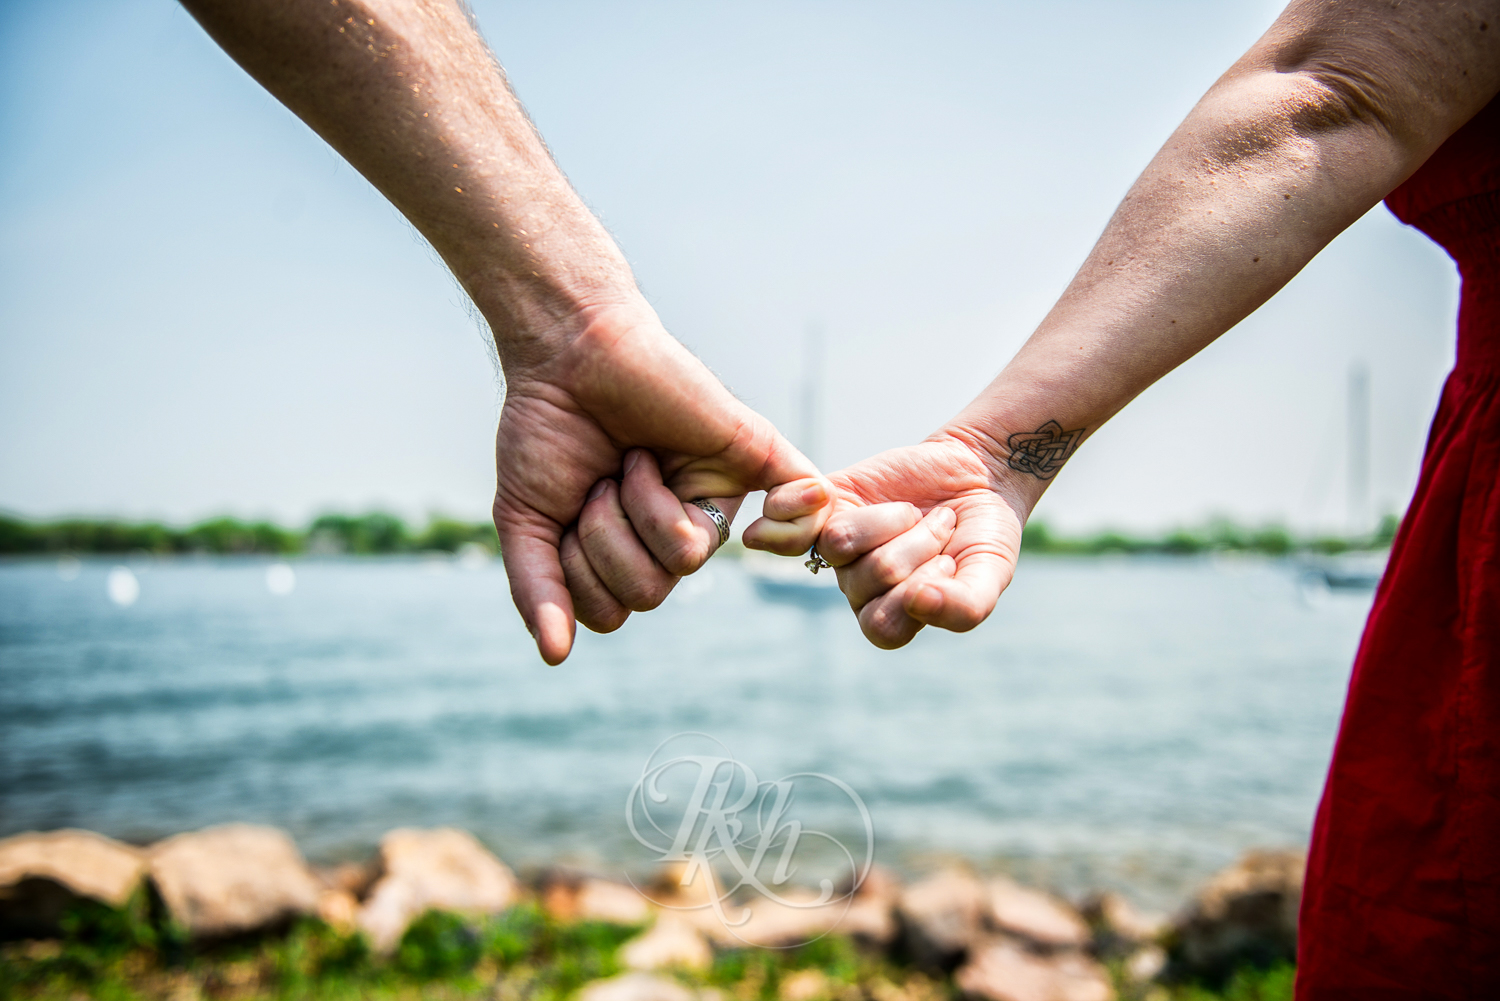 Sean & Jessica - Minnesota Engagement Photography - RKH Images-2.jpg